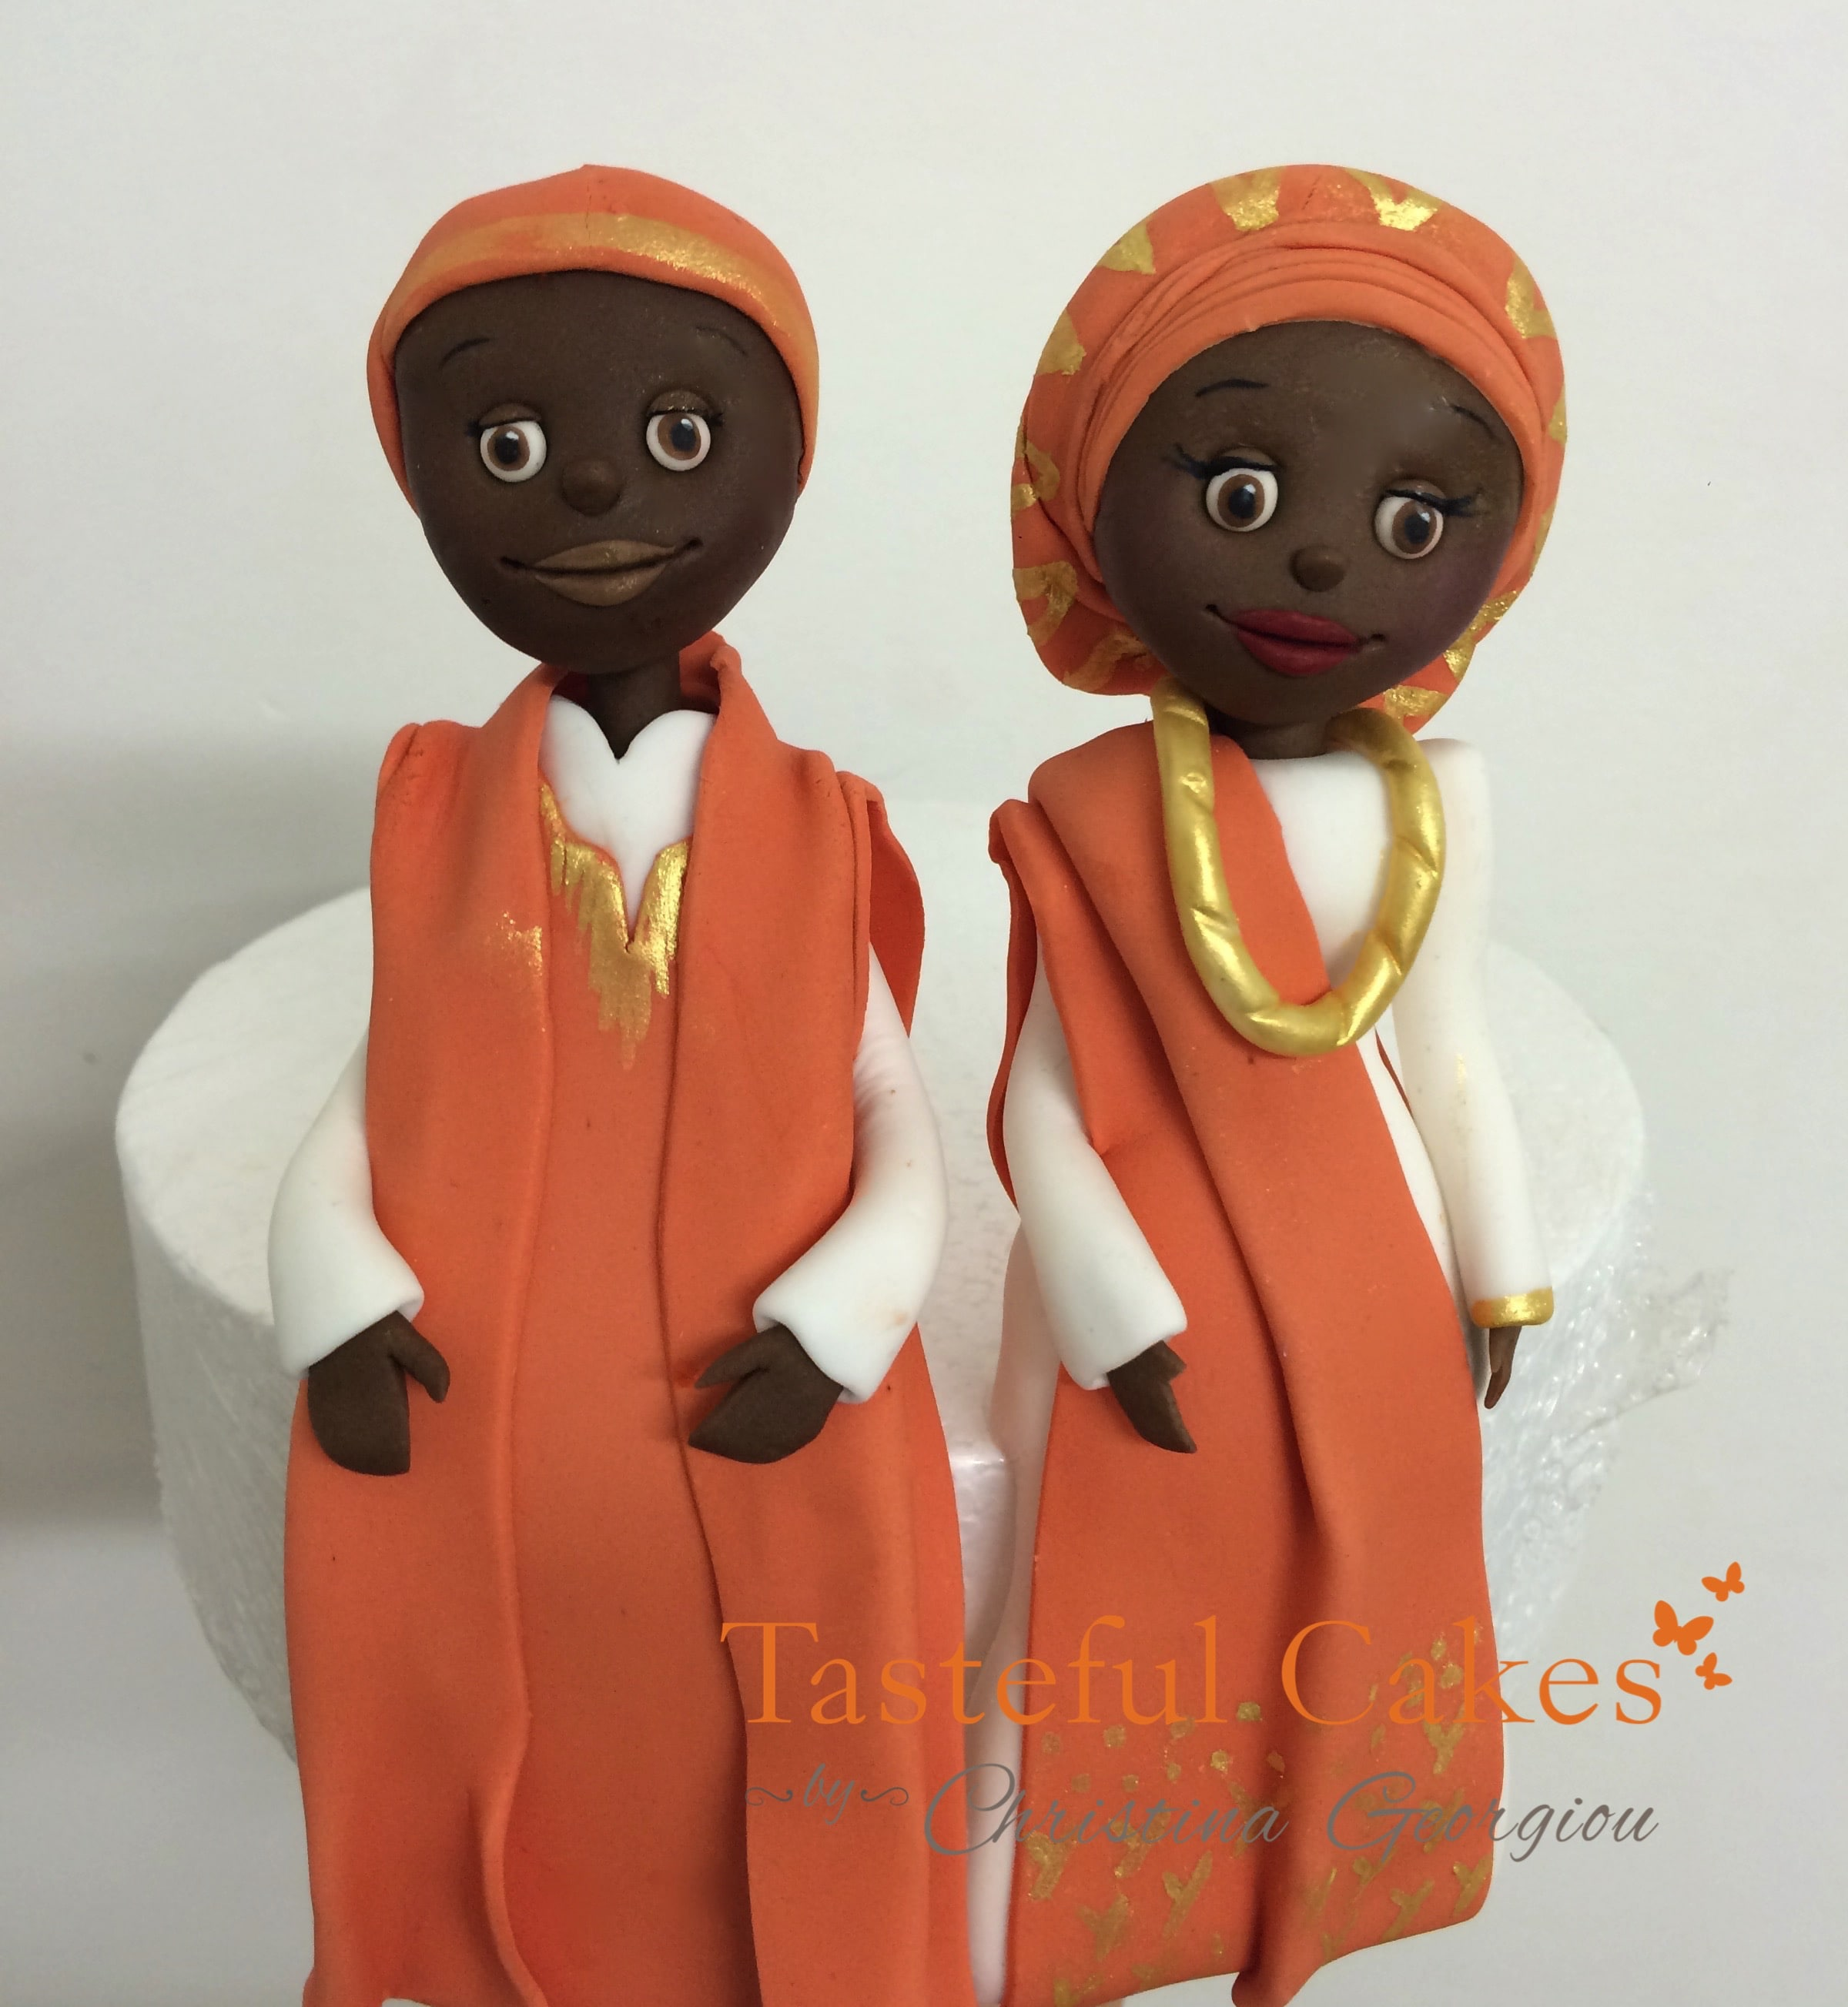 Tasteful Cakes By Christina Georgiou | African Themed Bride